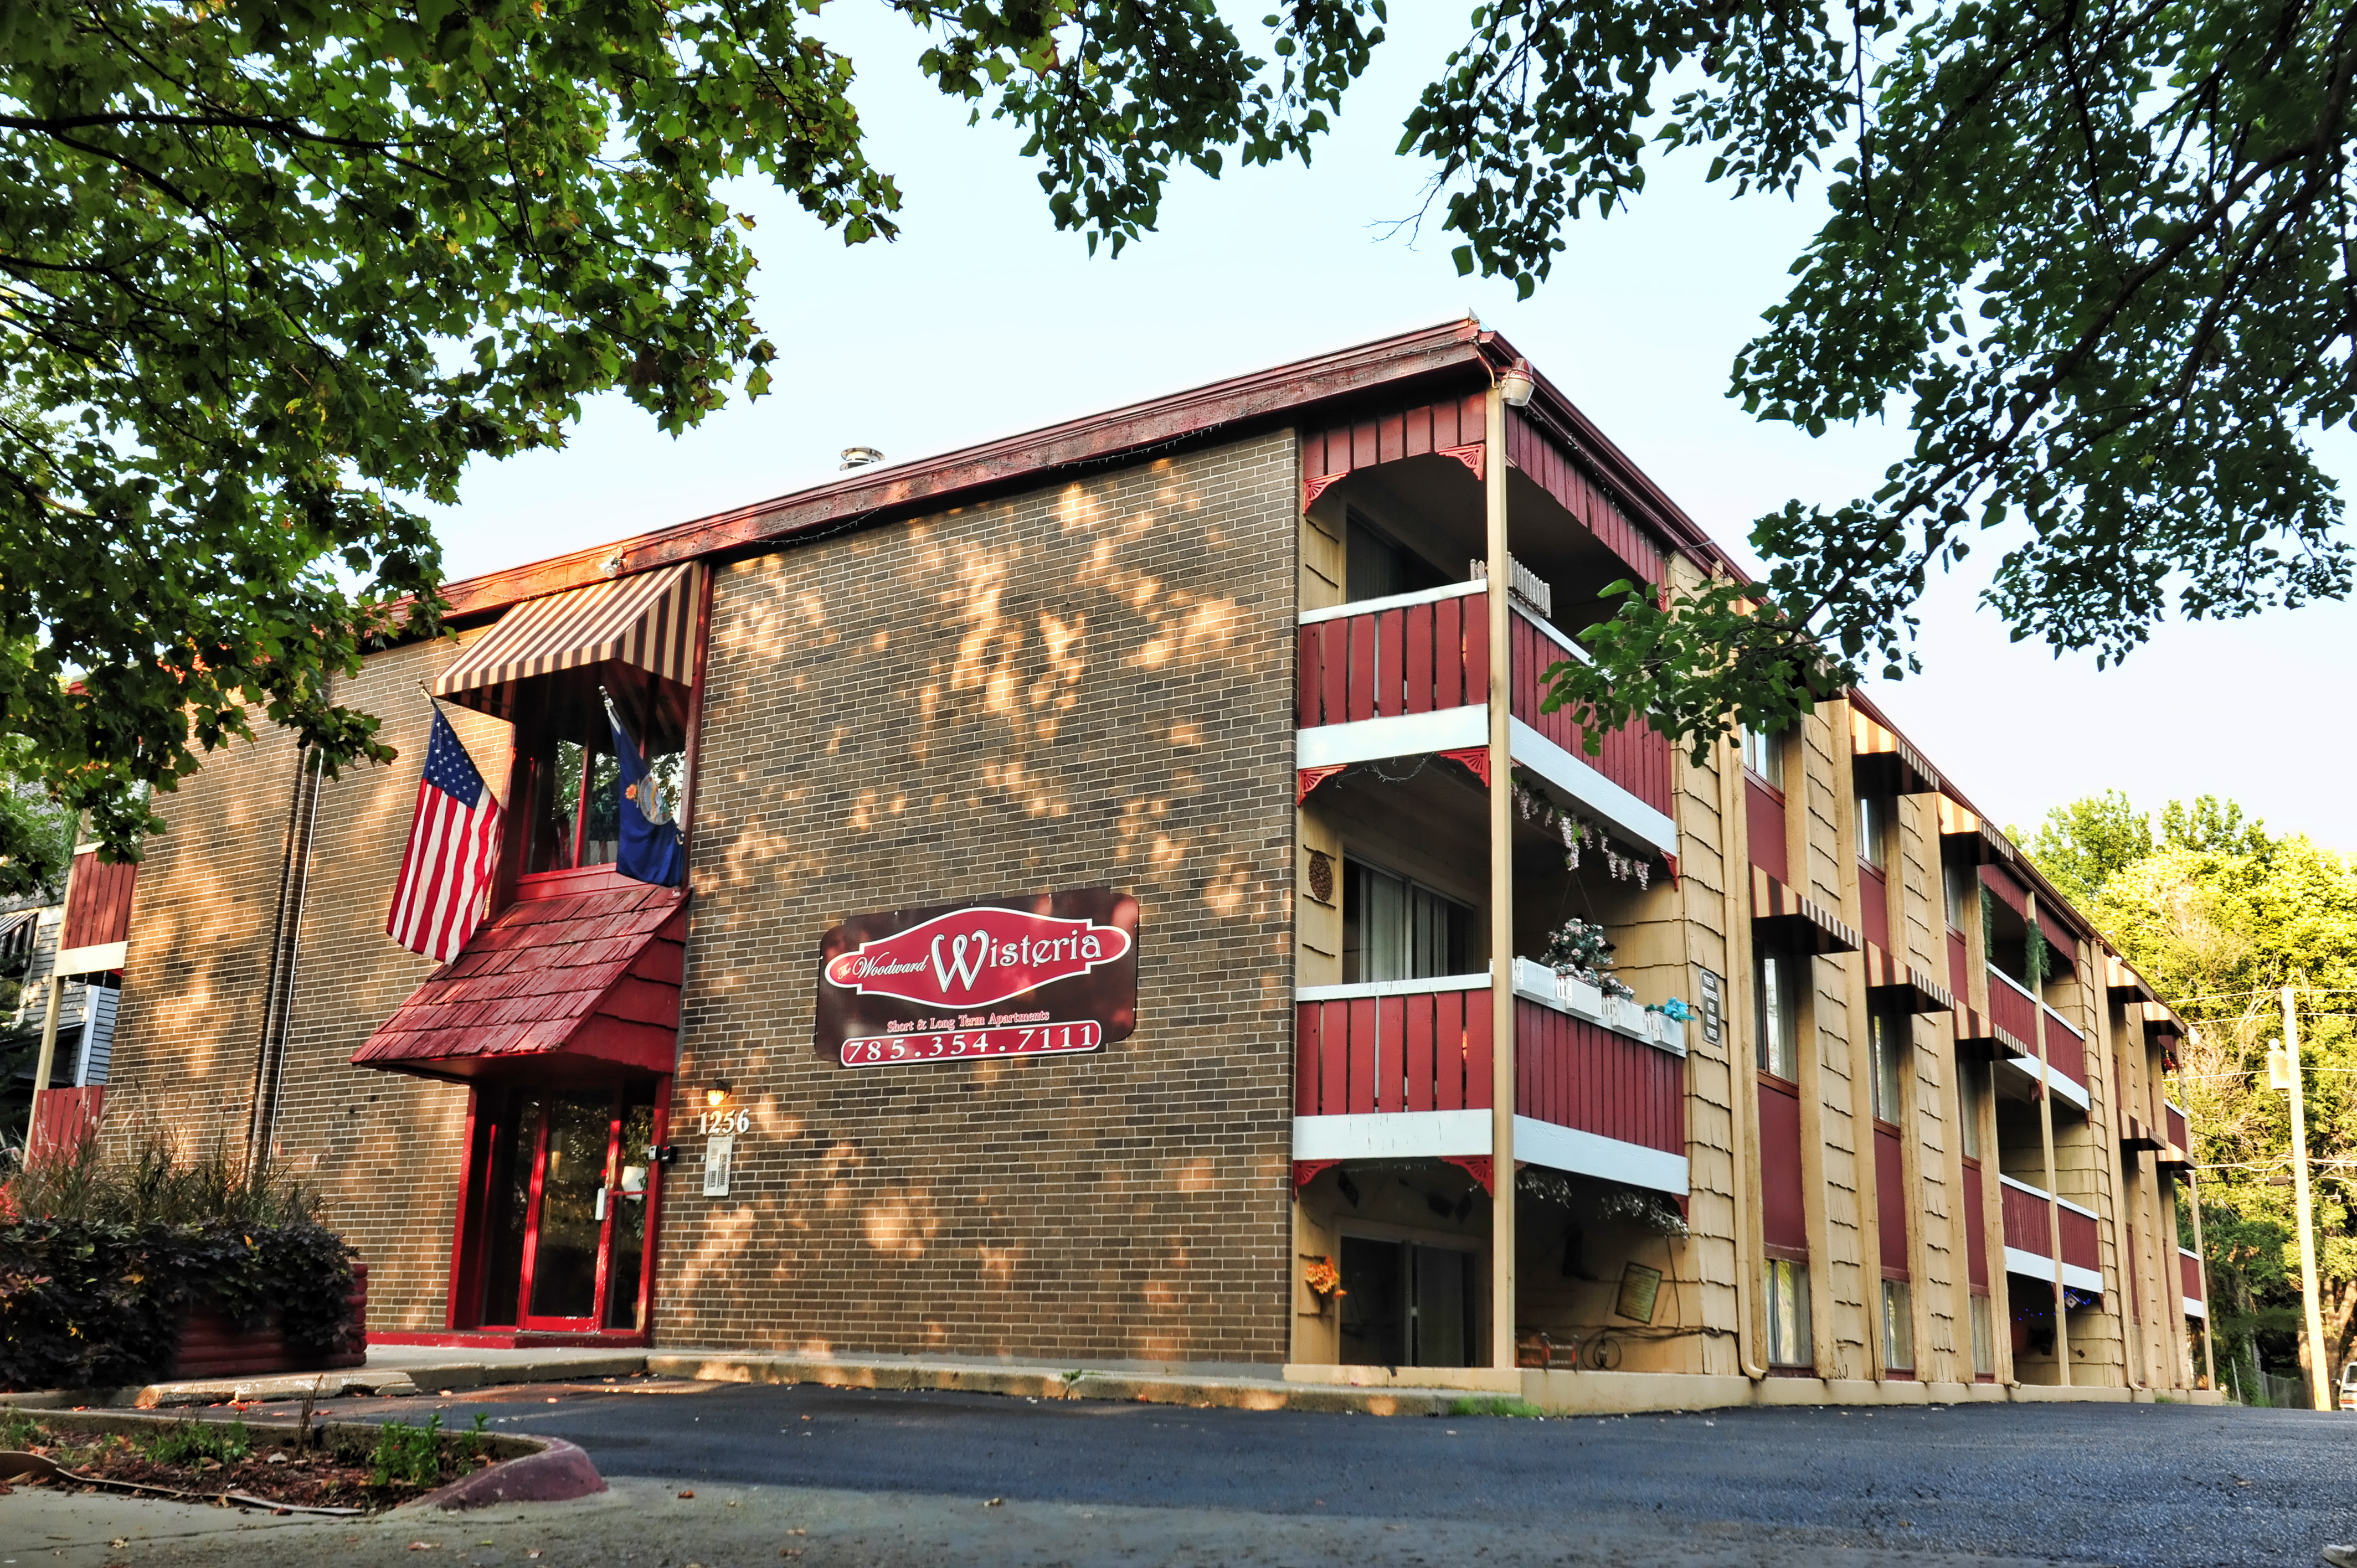 Monthly Extended Stay Moderate Hotel Apartments Apartments For Rent In Topeka Kansas United States